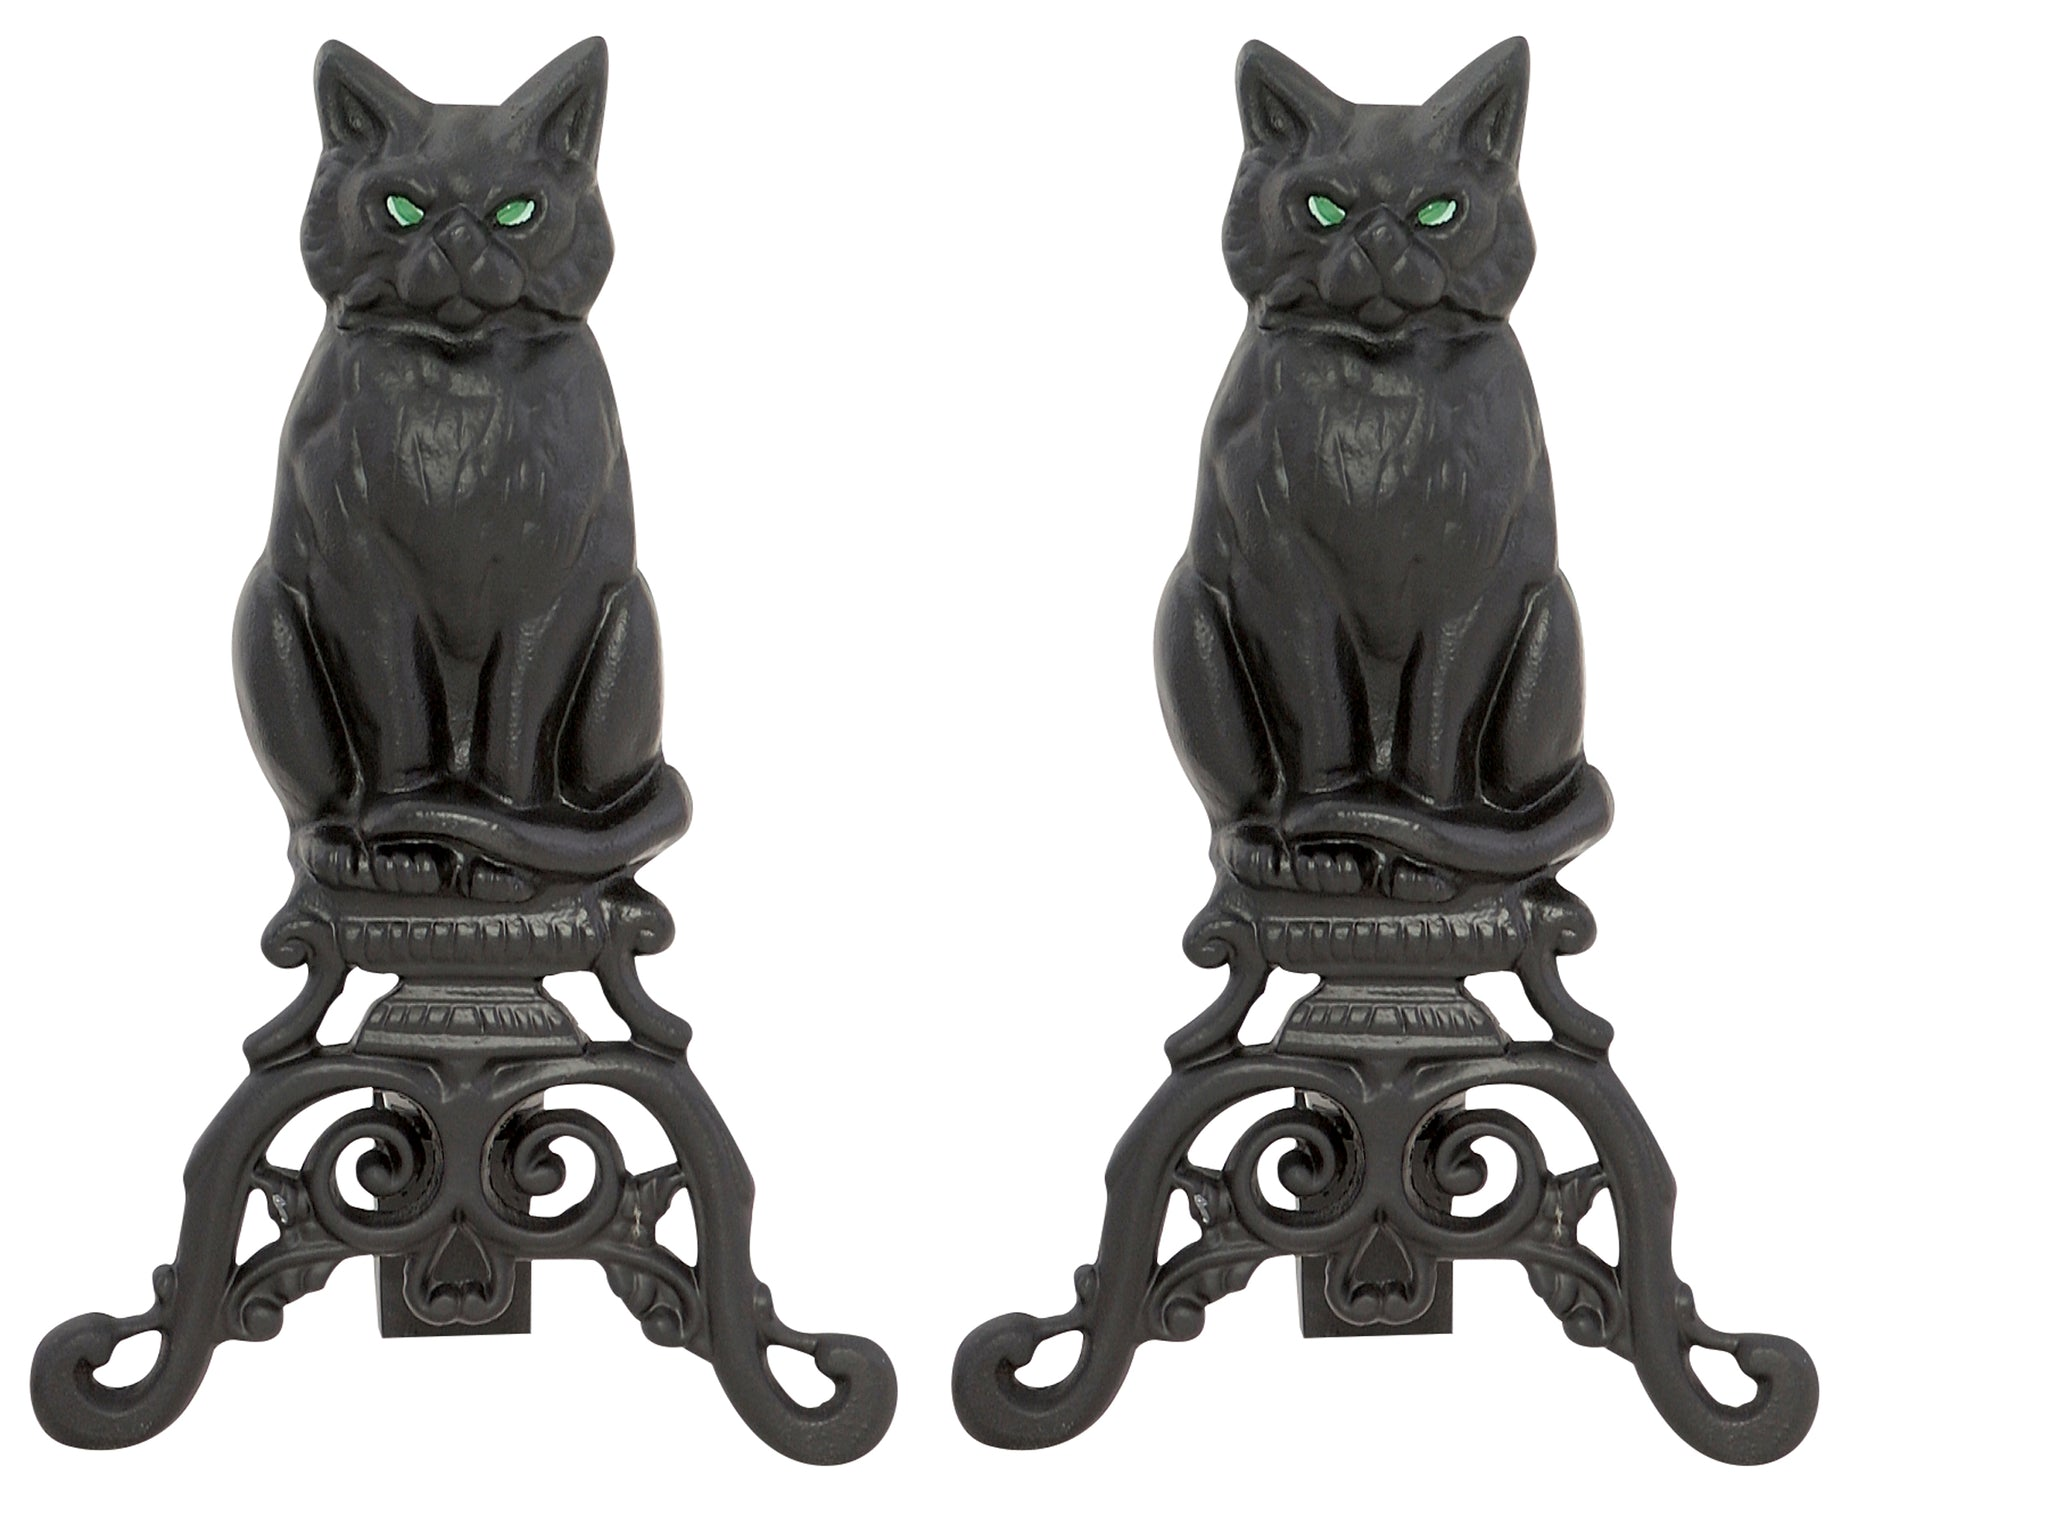 BLACK CAST IRON CAT ANDIRONS                              A-1251 - PATIO AND FIREPLACE CONCEPTS